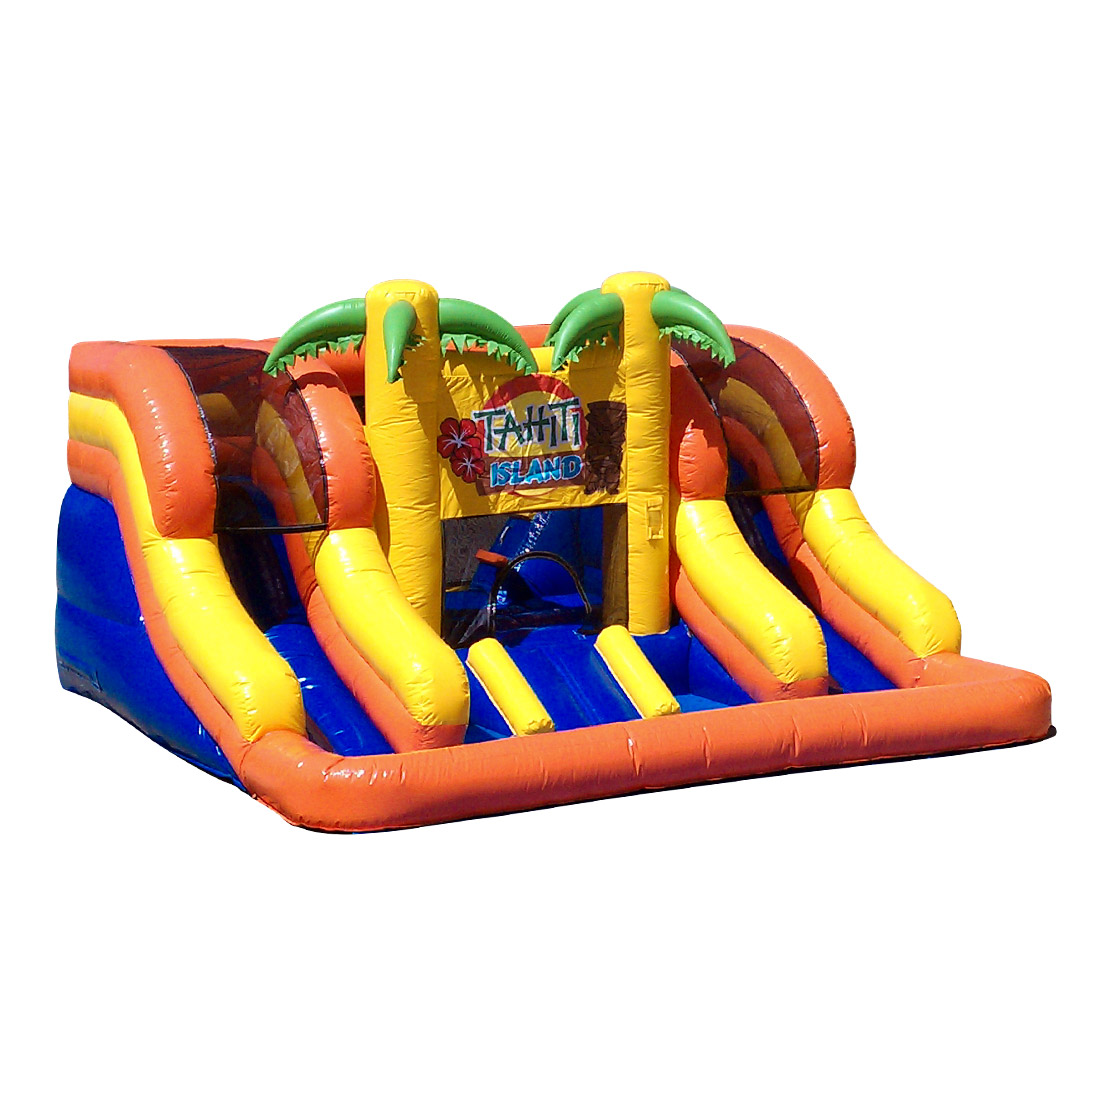 Tahiti Island Bounce House - Great unit for ages 2 years old to 10 years old. This unit can be used with or without water.